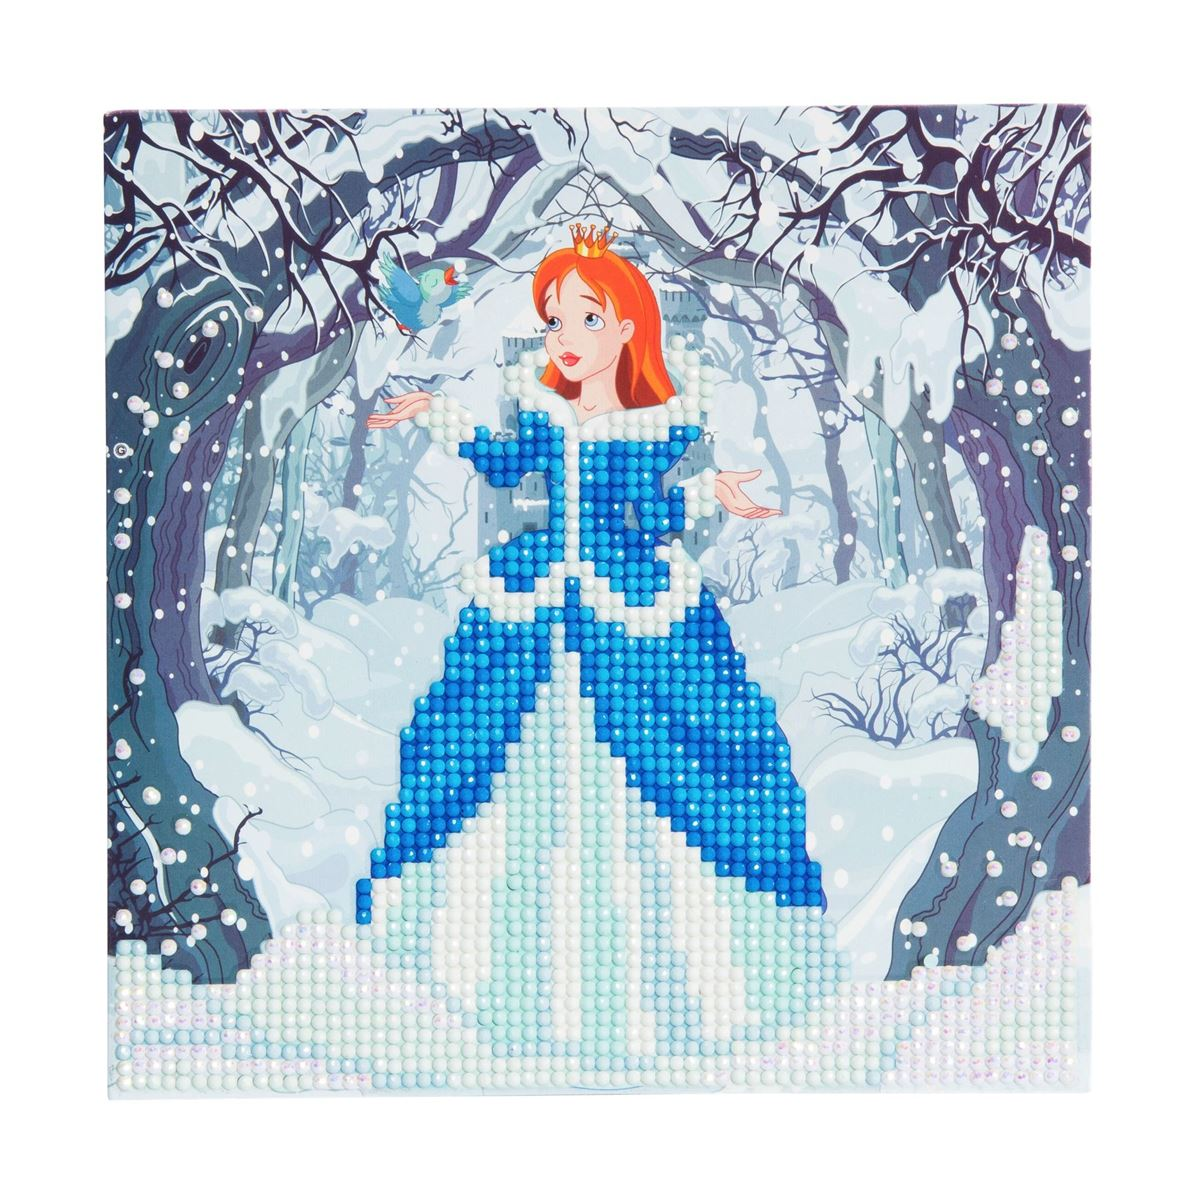 Enchanted Princess- Crystal Art Card 5D Diamond Painting Kit